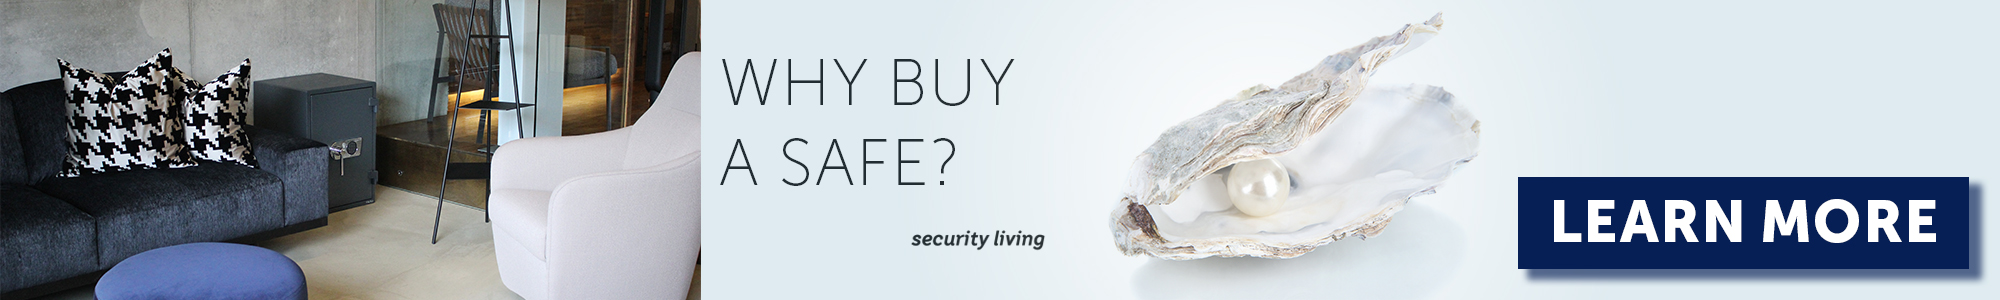 Why buy a safe?